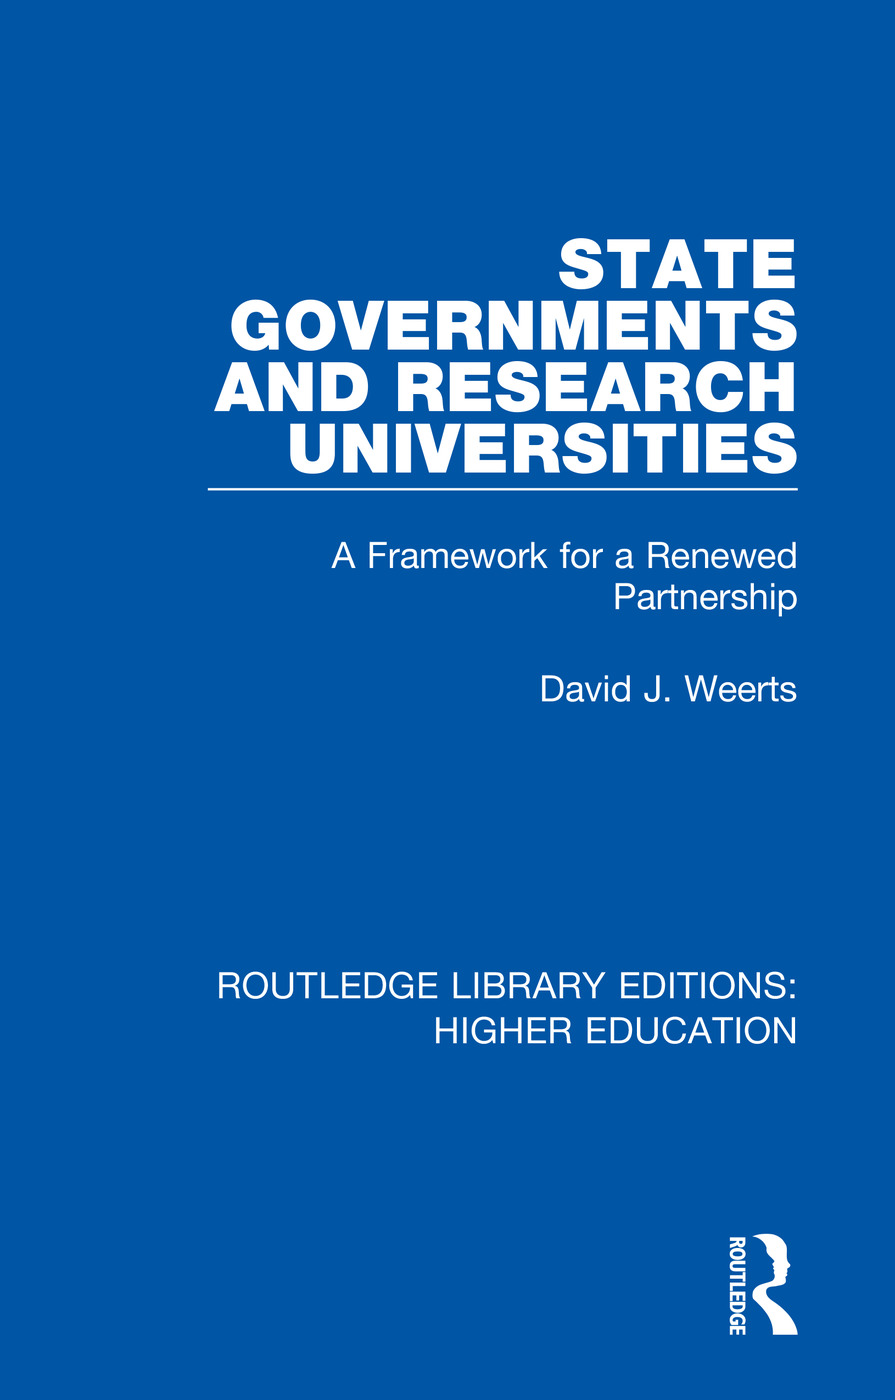 State Governments and Research Universities: A Framework for a Renewed Partnership book cover